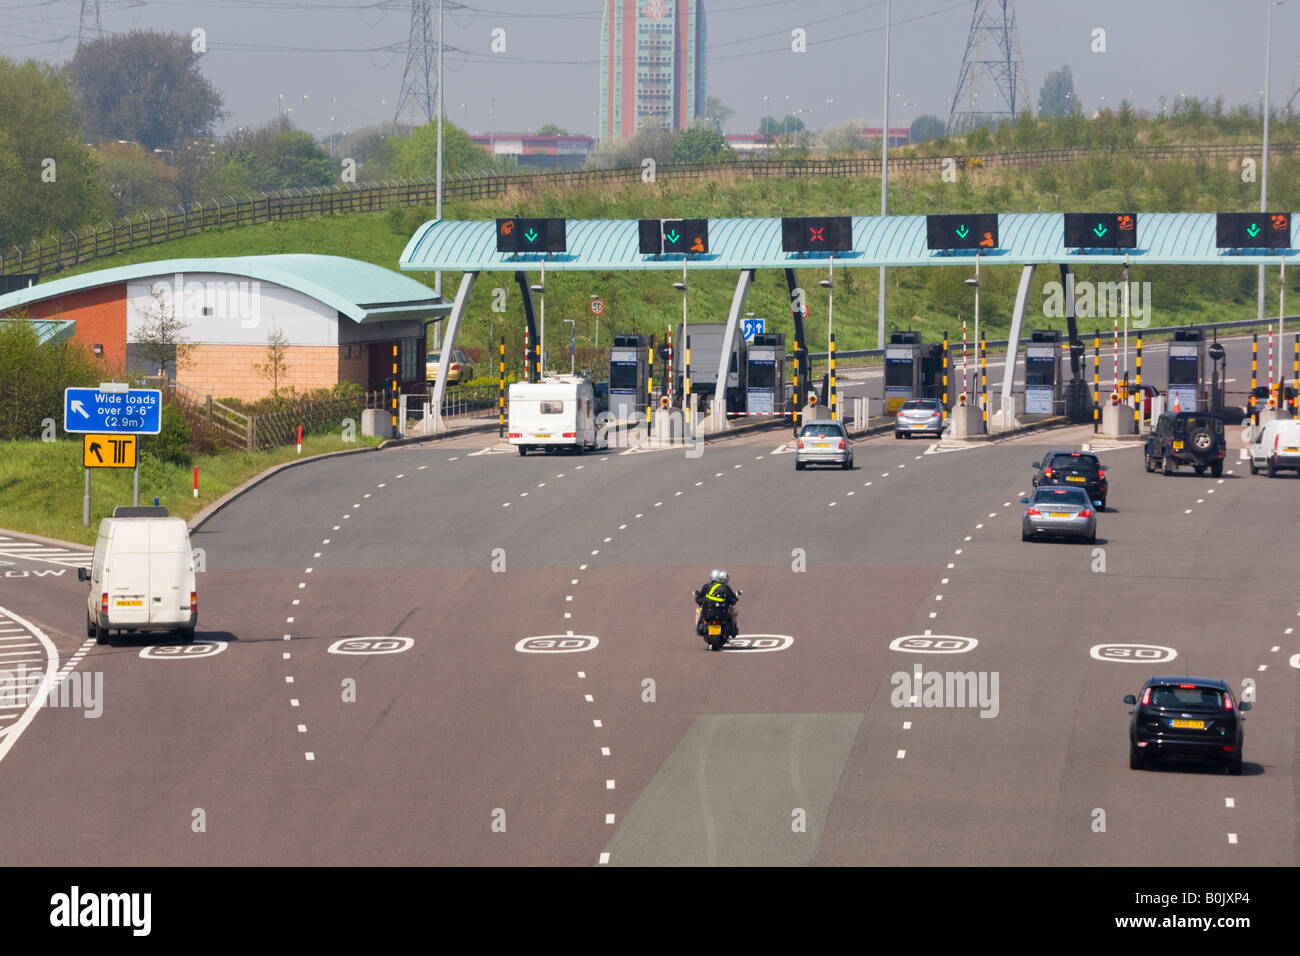 M6 TOLL MOTORWAY from above with vehicles approaching toll booths West Midlands England UK - Stock Image